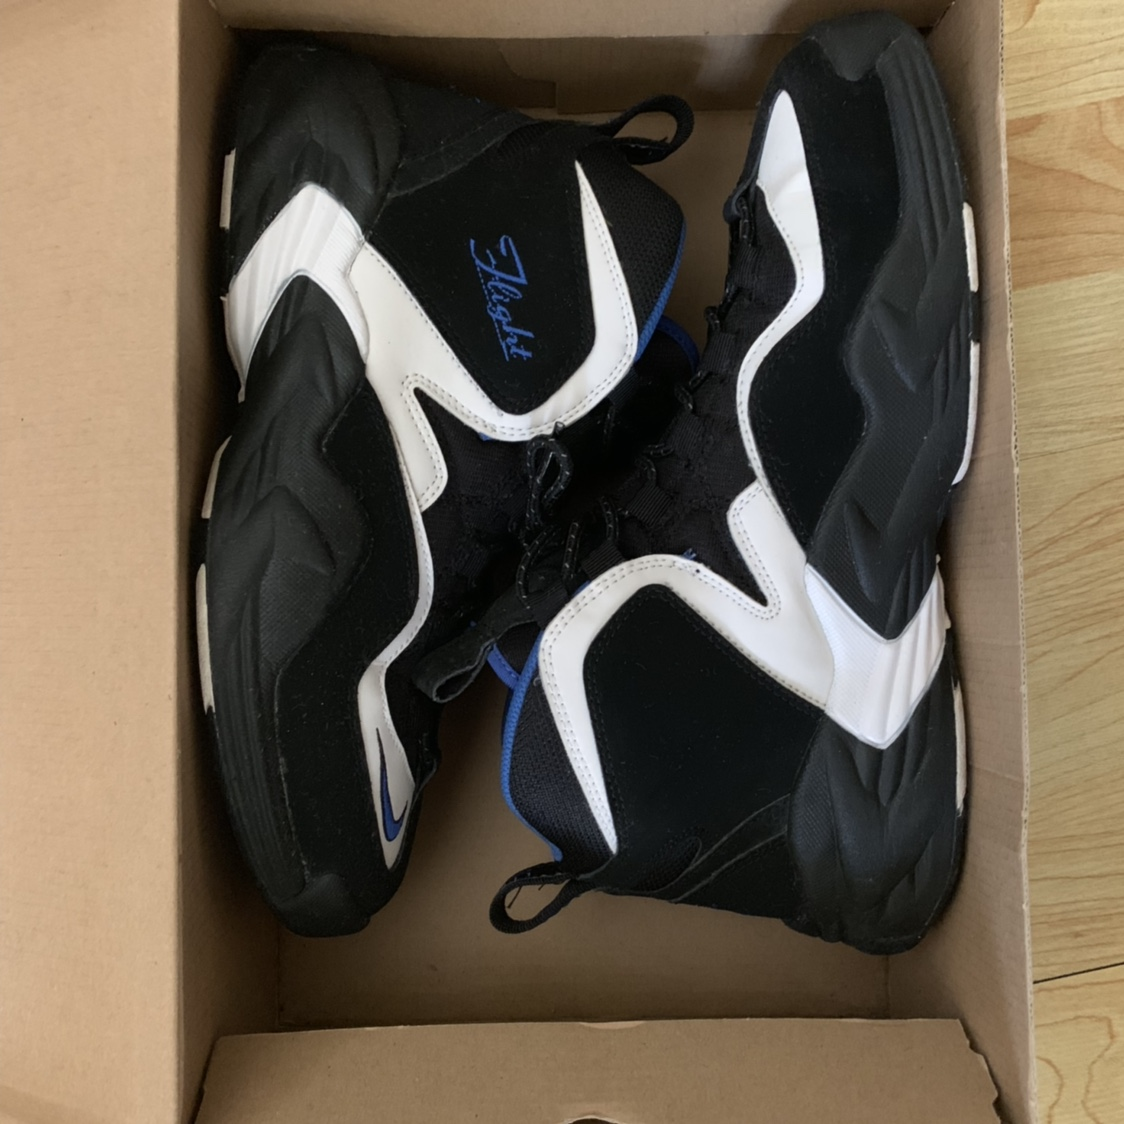 a used pair of Nike Air Go LWP size